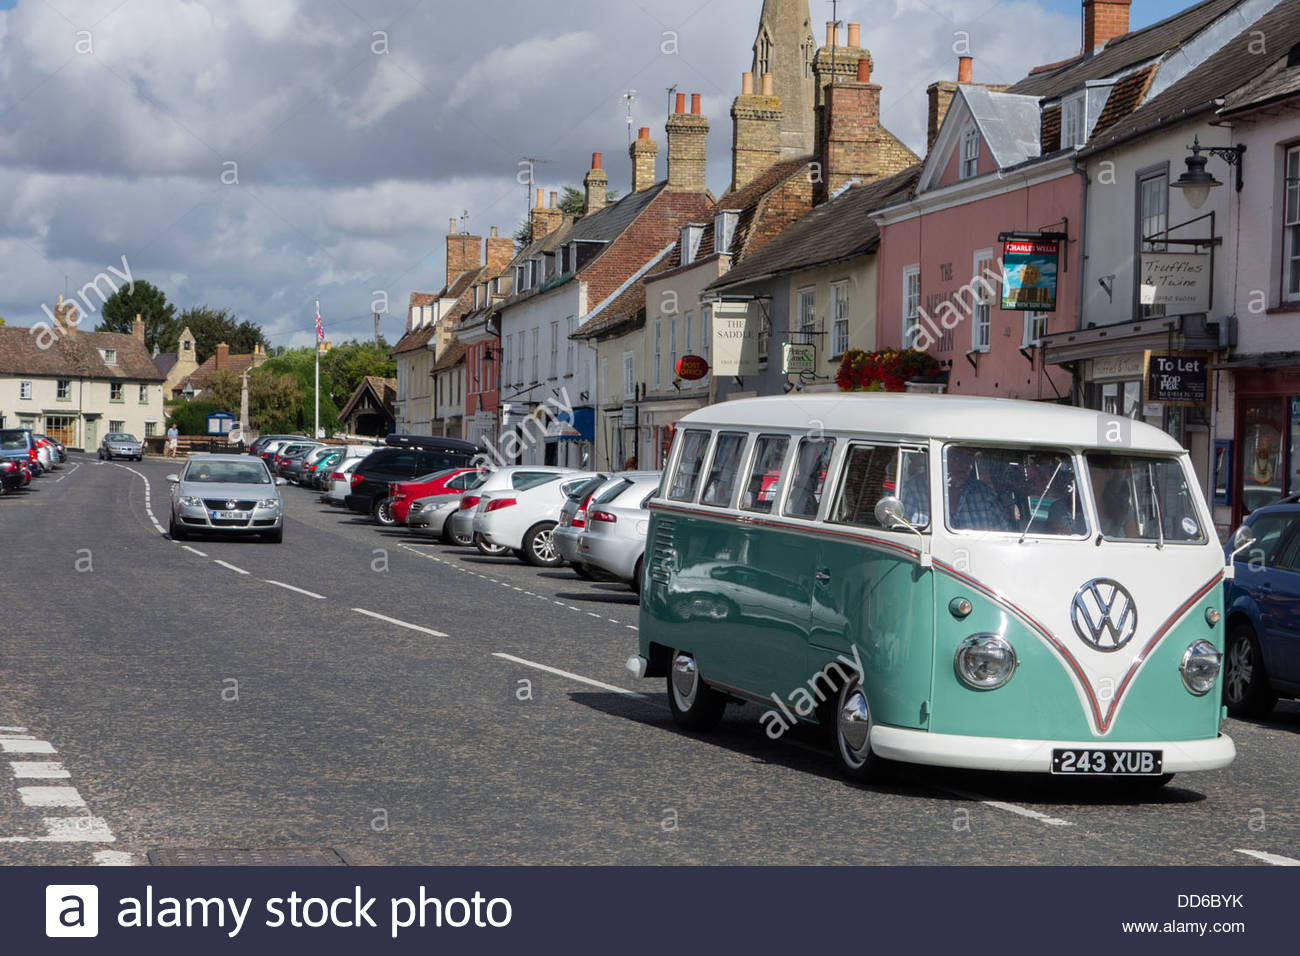 VW Camper van on Kimbolton High Street, Cambridgeshire, England - Stock Image